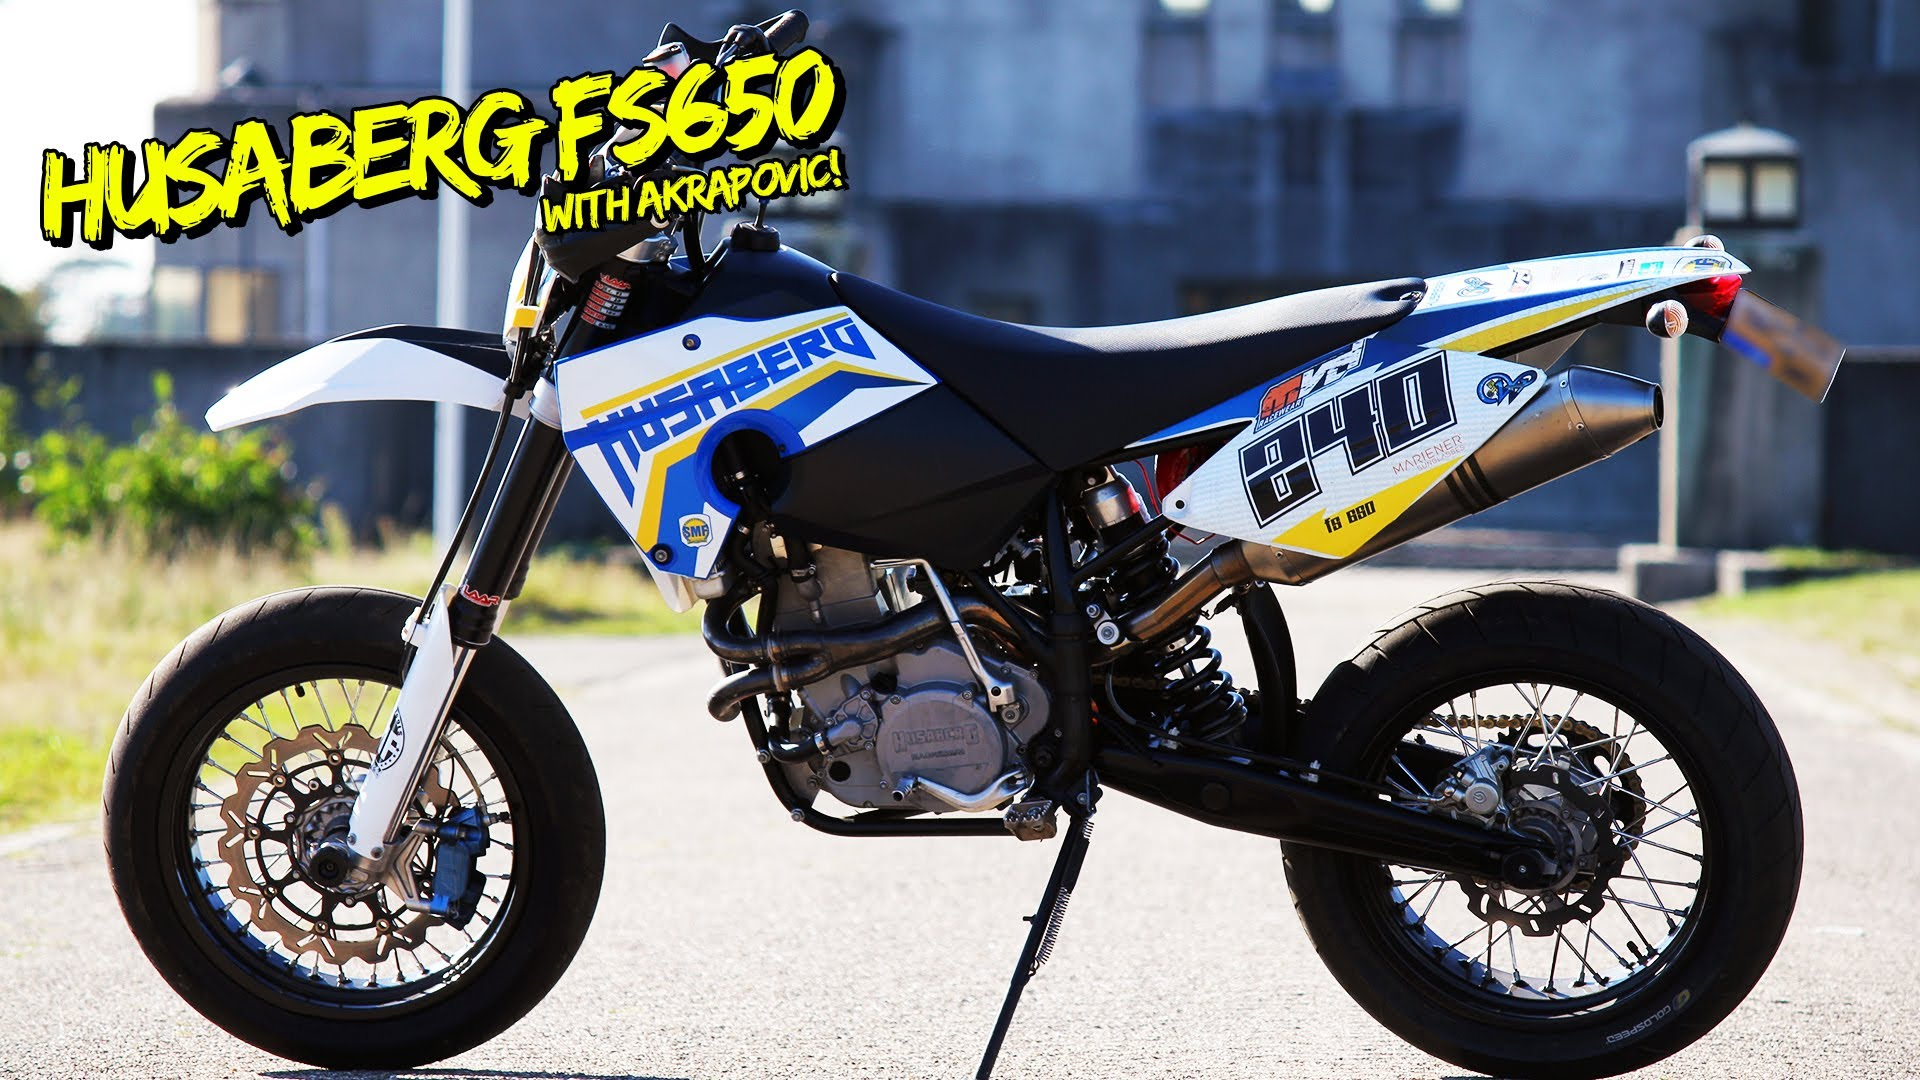 Husaberg FS 650 C 2002 wallpapers #137856